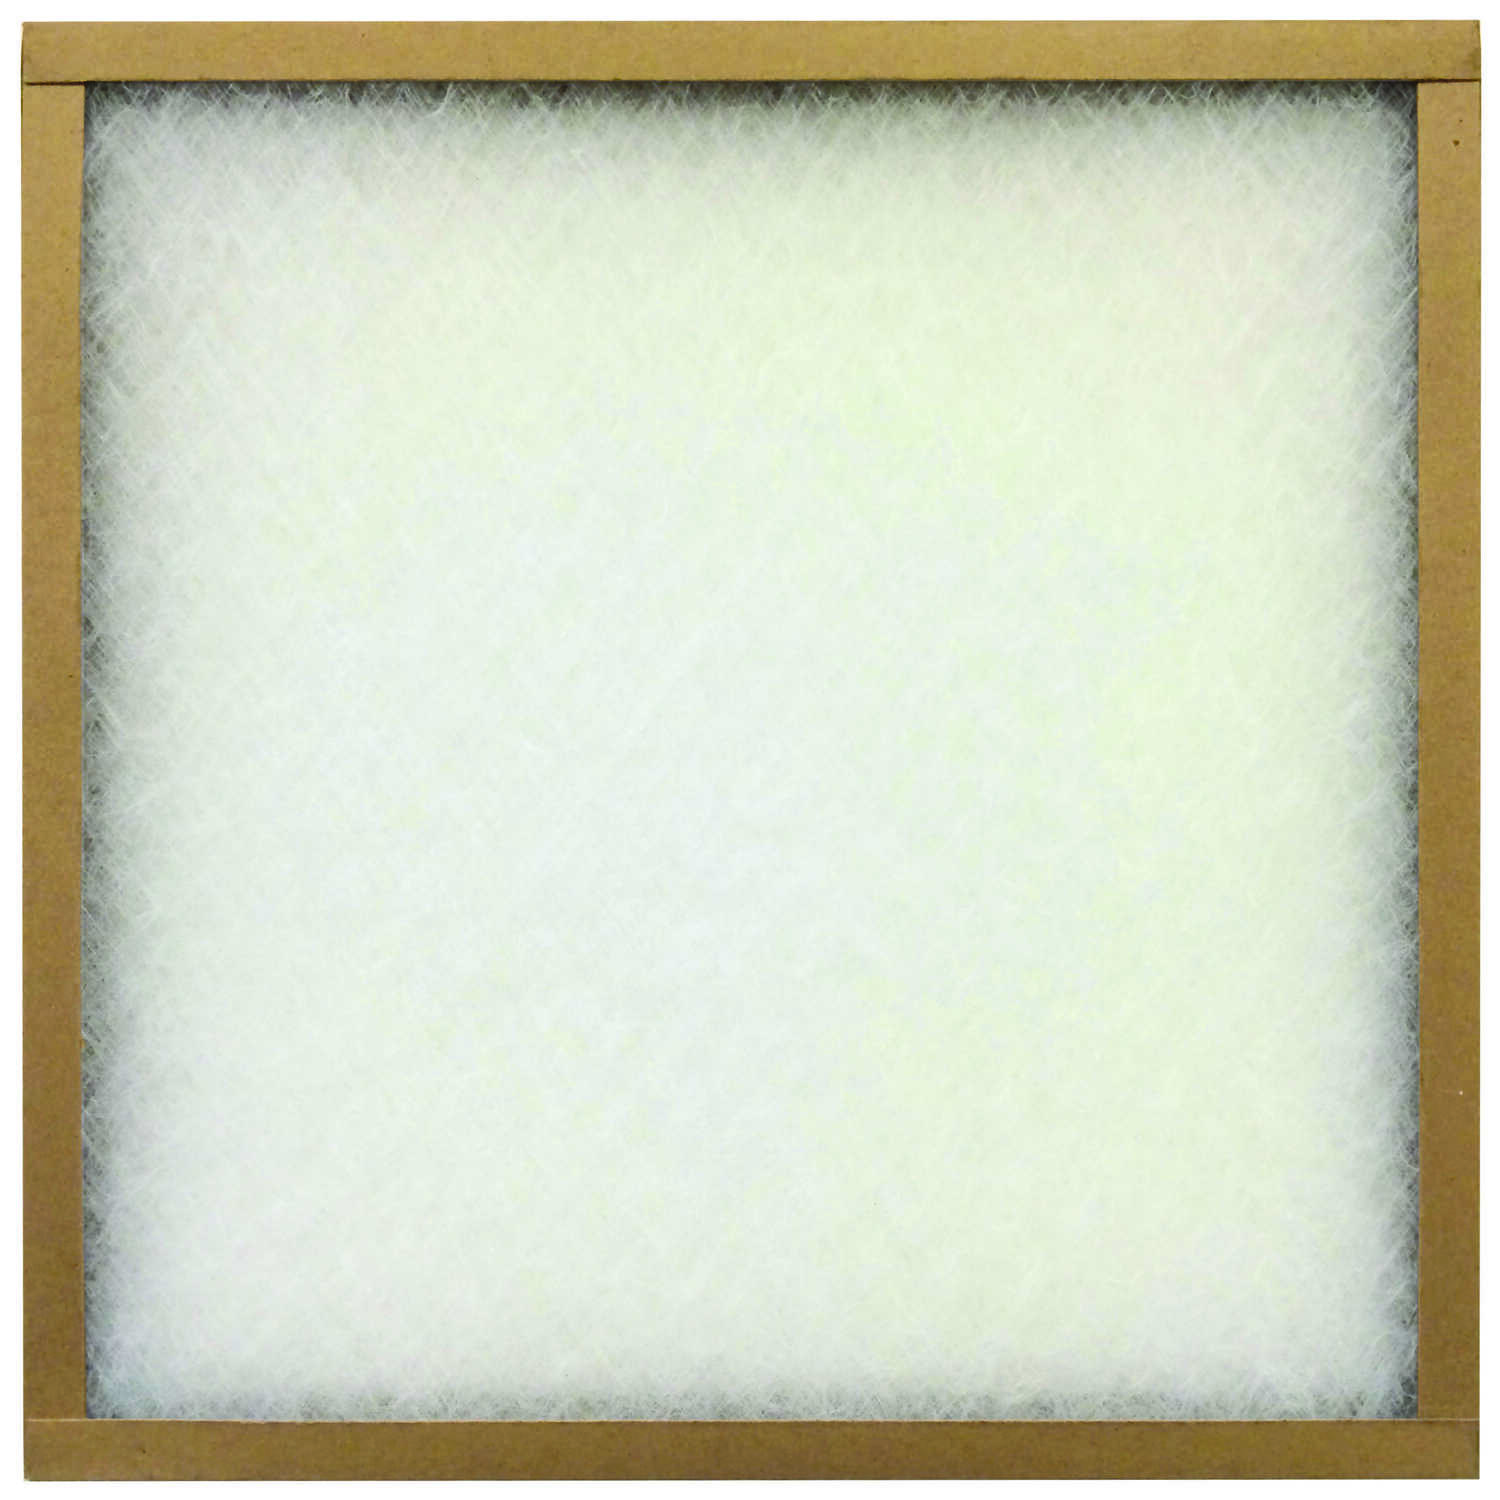 AAF Flanders  30 in. H x 20 in. W x 1 in. D Fiberglass  Air Filter